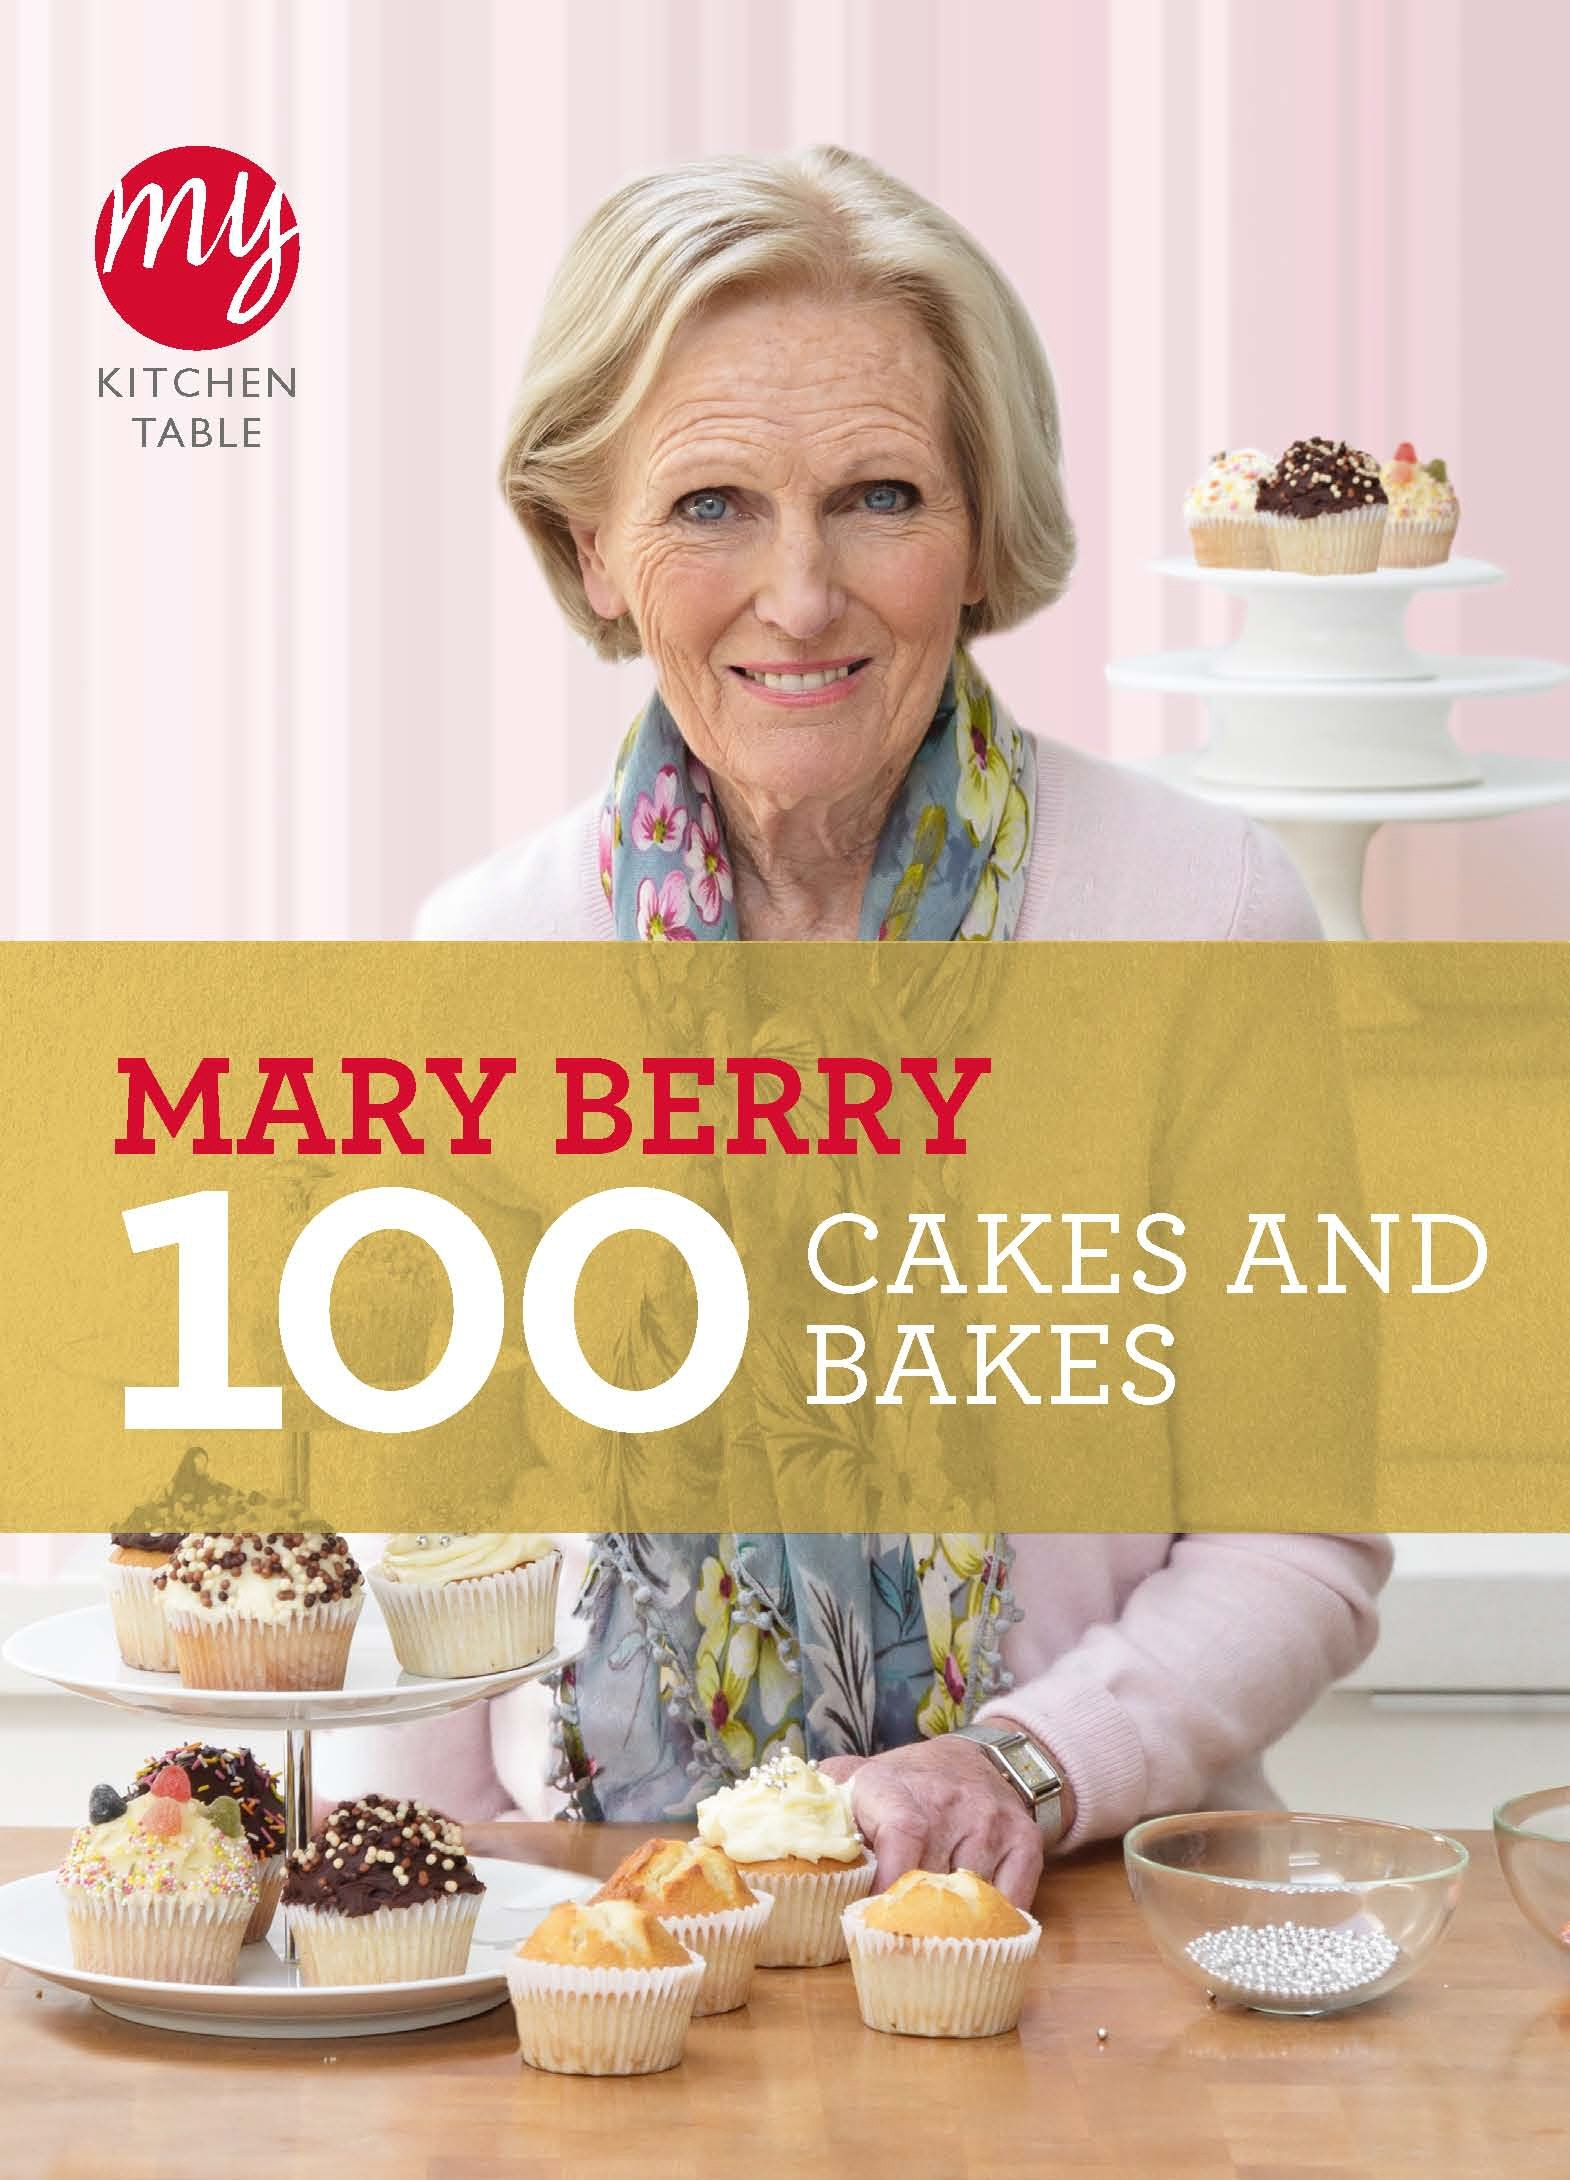 My Kitchen Table: 100 Cakes and Bakes: Amazon.co.uk: Mary Berry:  8601400462836: Books